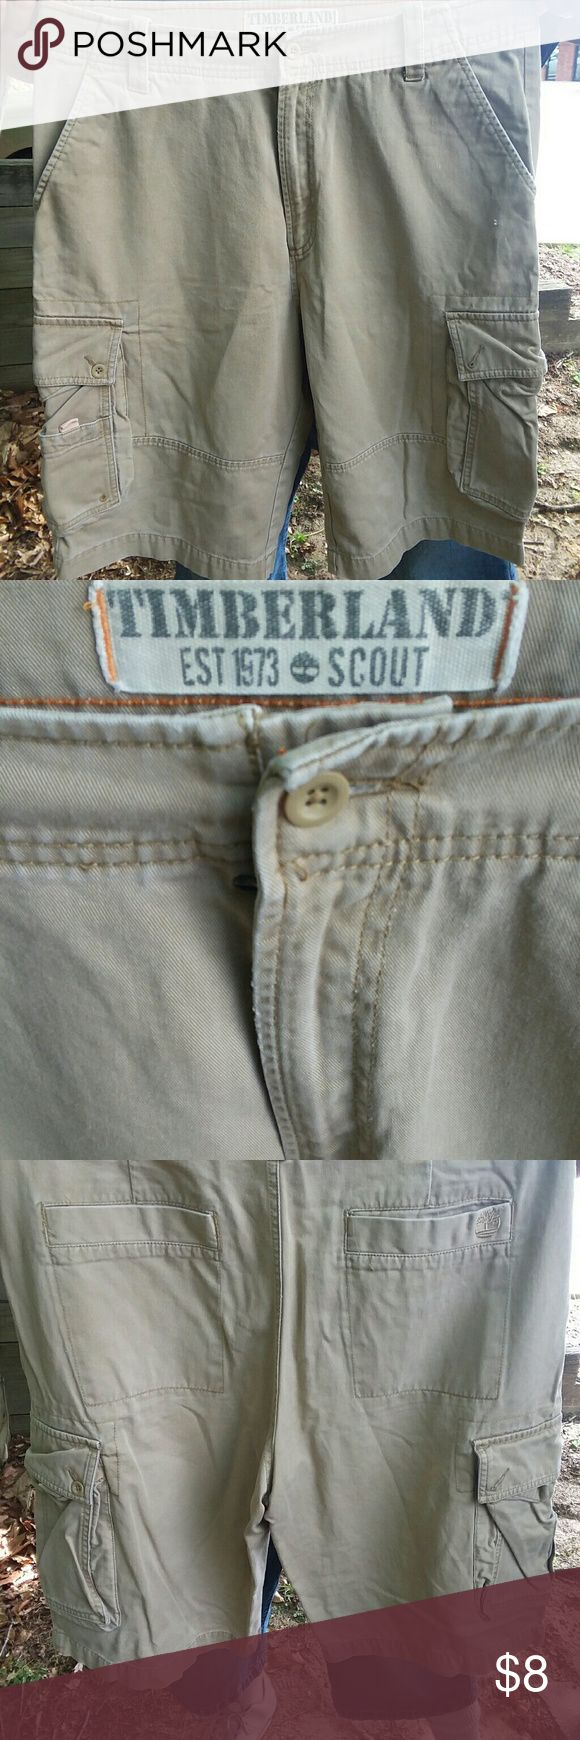 MENS TIMBERLAND CARGO KHAKI SHORTS SZ. 36 I am selling a pair of men's Timberland Scout khaki cargo shorts size 36 very good condition. Sorry about the wrinkles fellows but my iron failed me LOL. Gentleman if you know timberland then you know these pants can be worn for a very very long time the quality does not disappoint, they may be used but they are too nice to throw out ?? Timberland Shorts Cargo